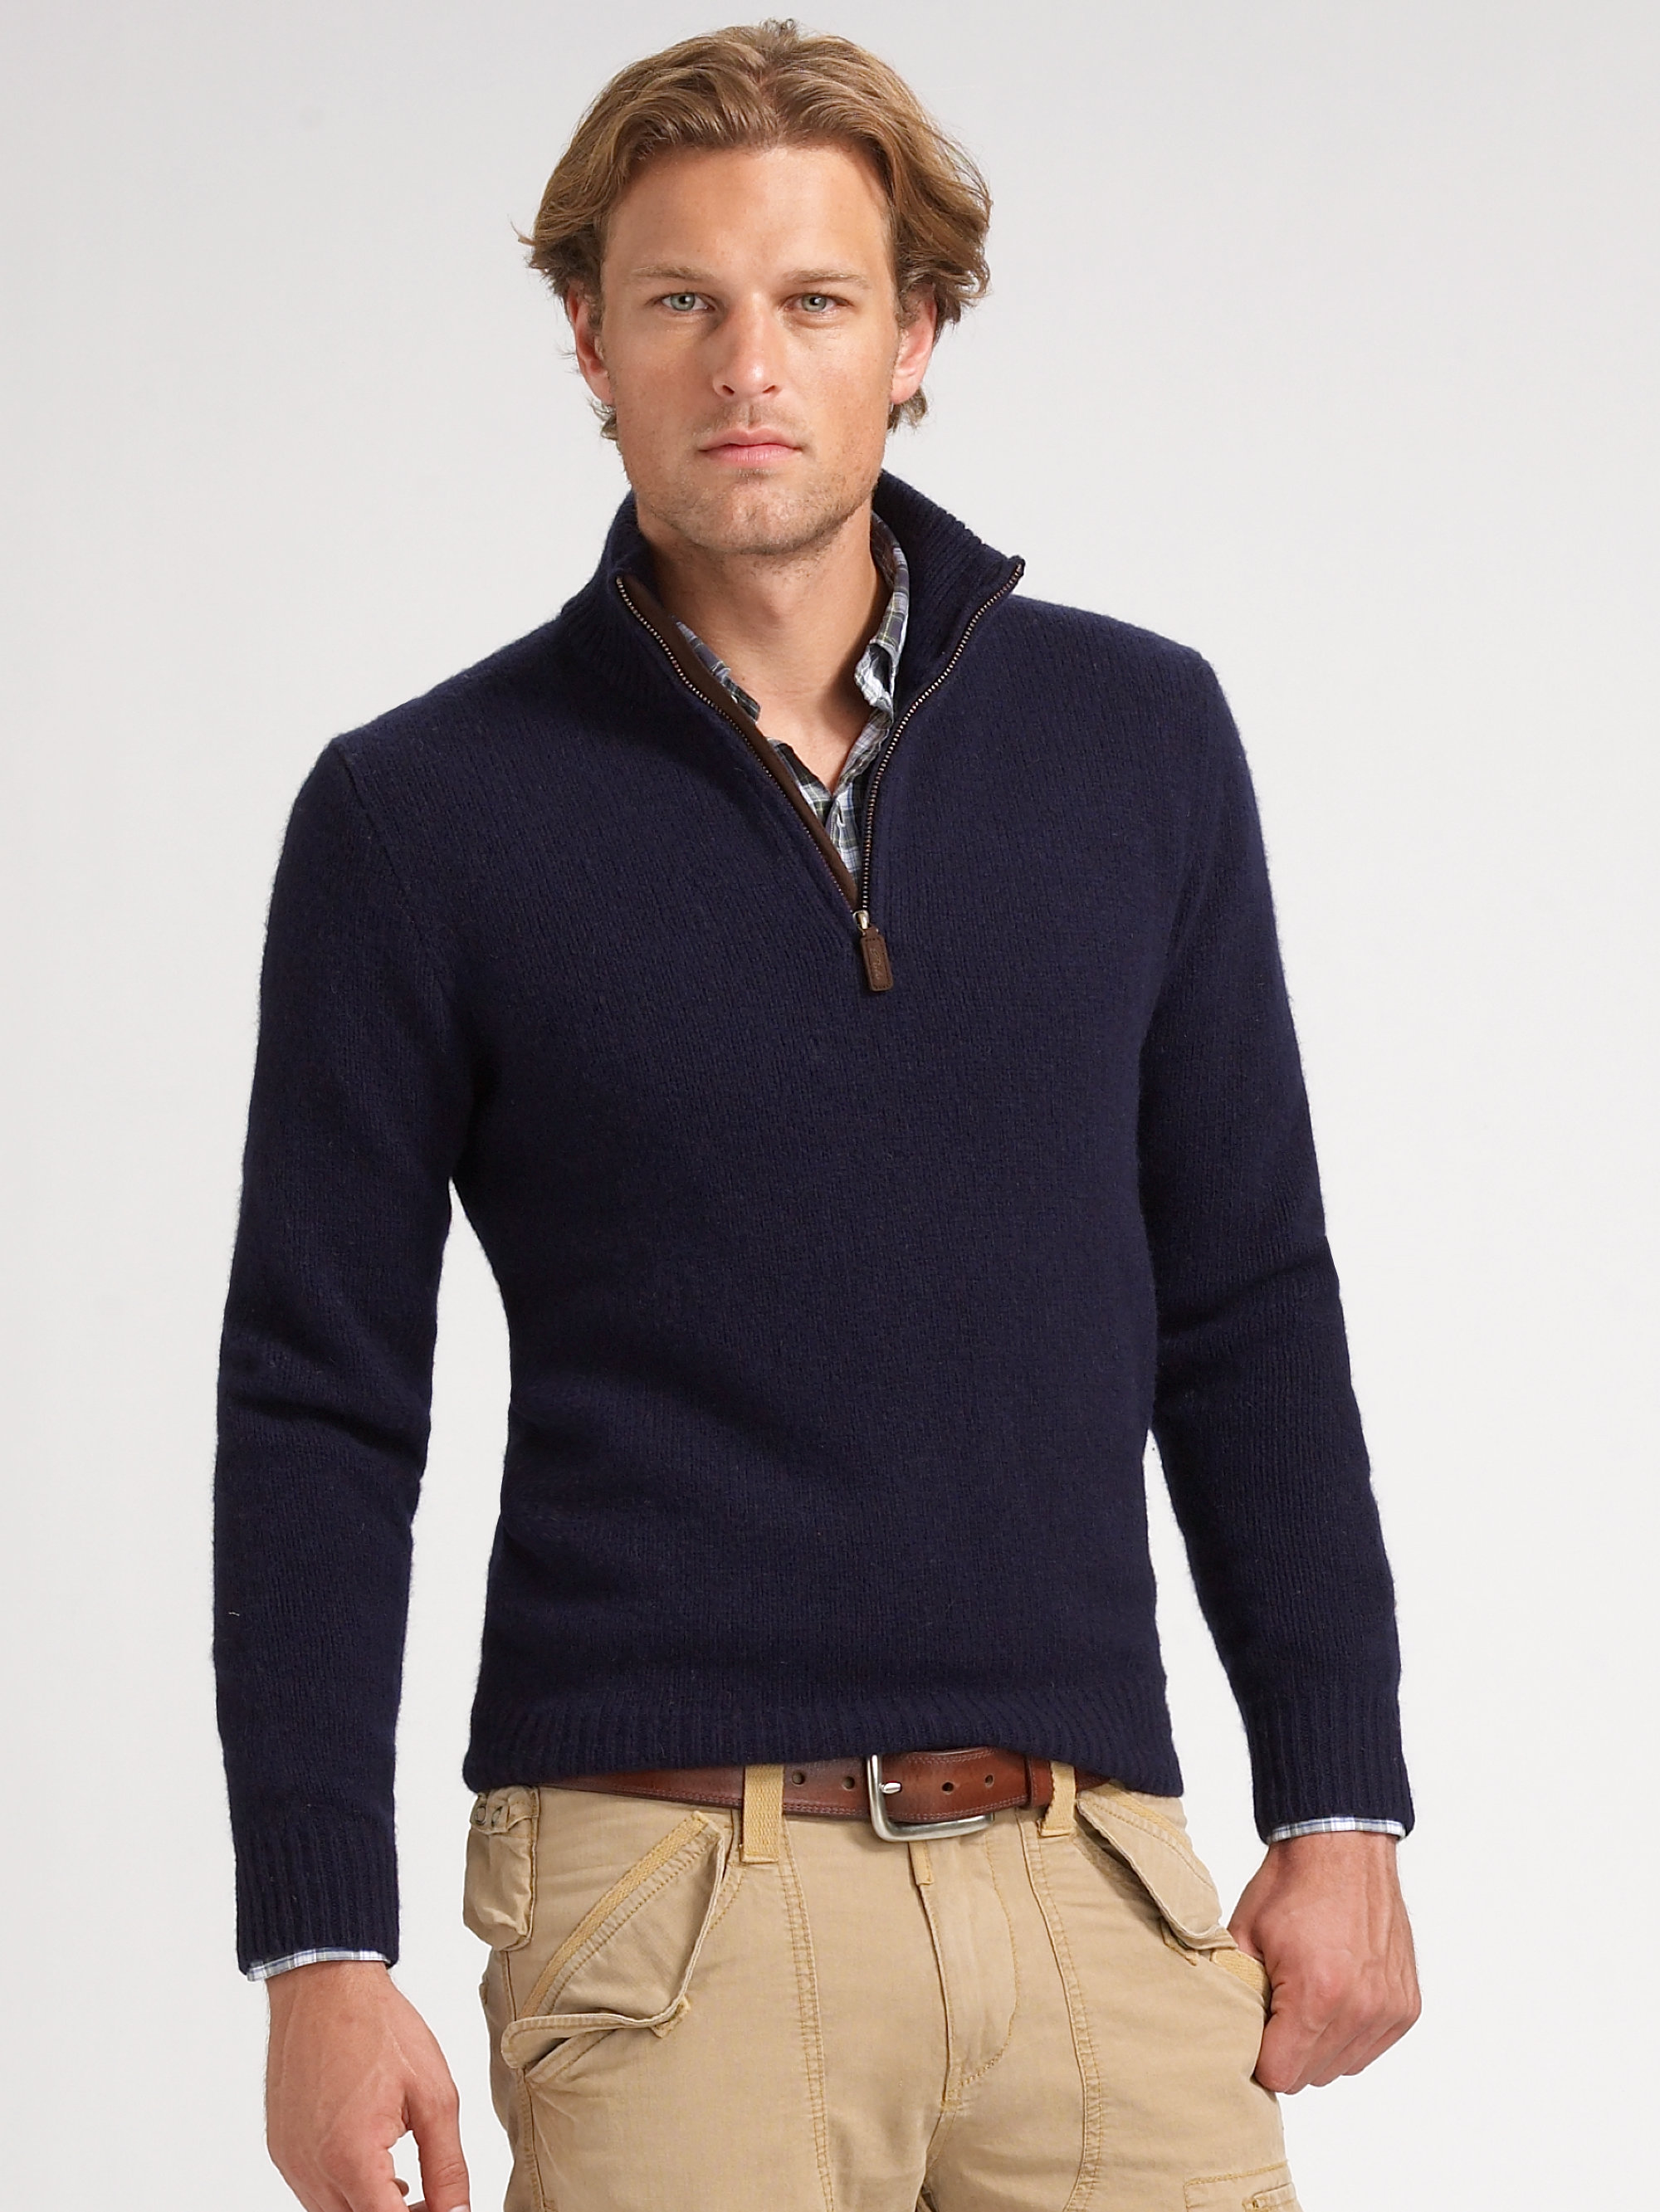 polo ralph lauren halfzip merino sweater in blue for men lyst. Black Bedroom Furniture Sets. Home Design Ideas